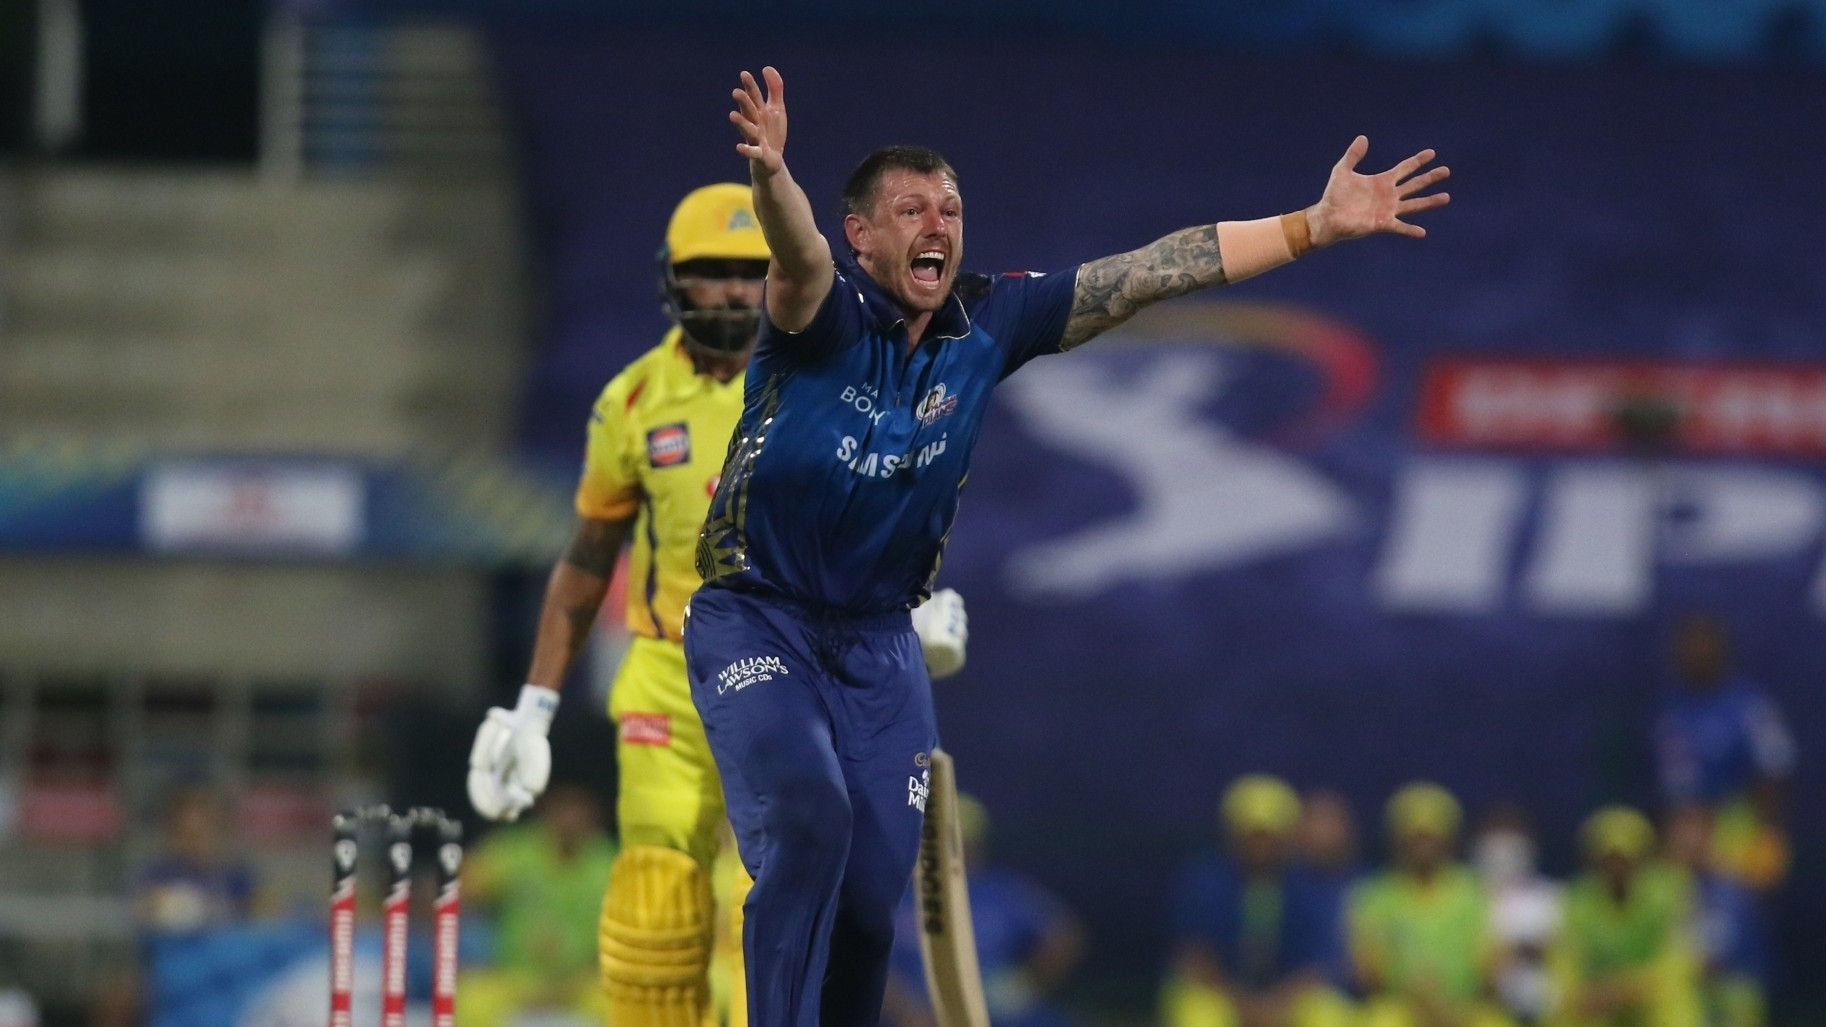 IPL 2020: James Pattinson grateful to play cricket amidst COVID-19 pandemic